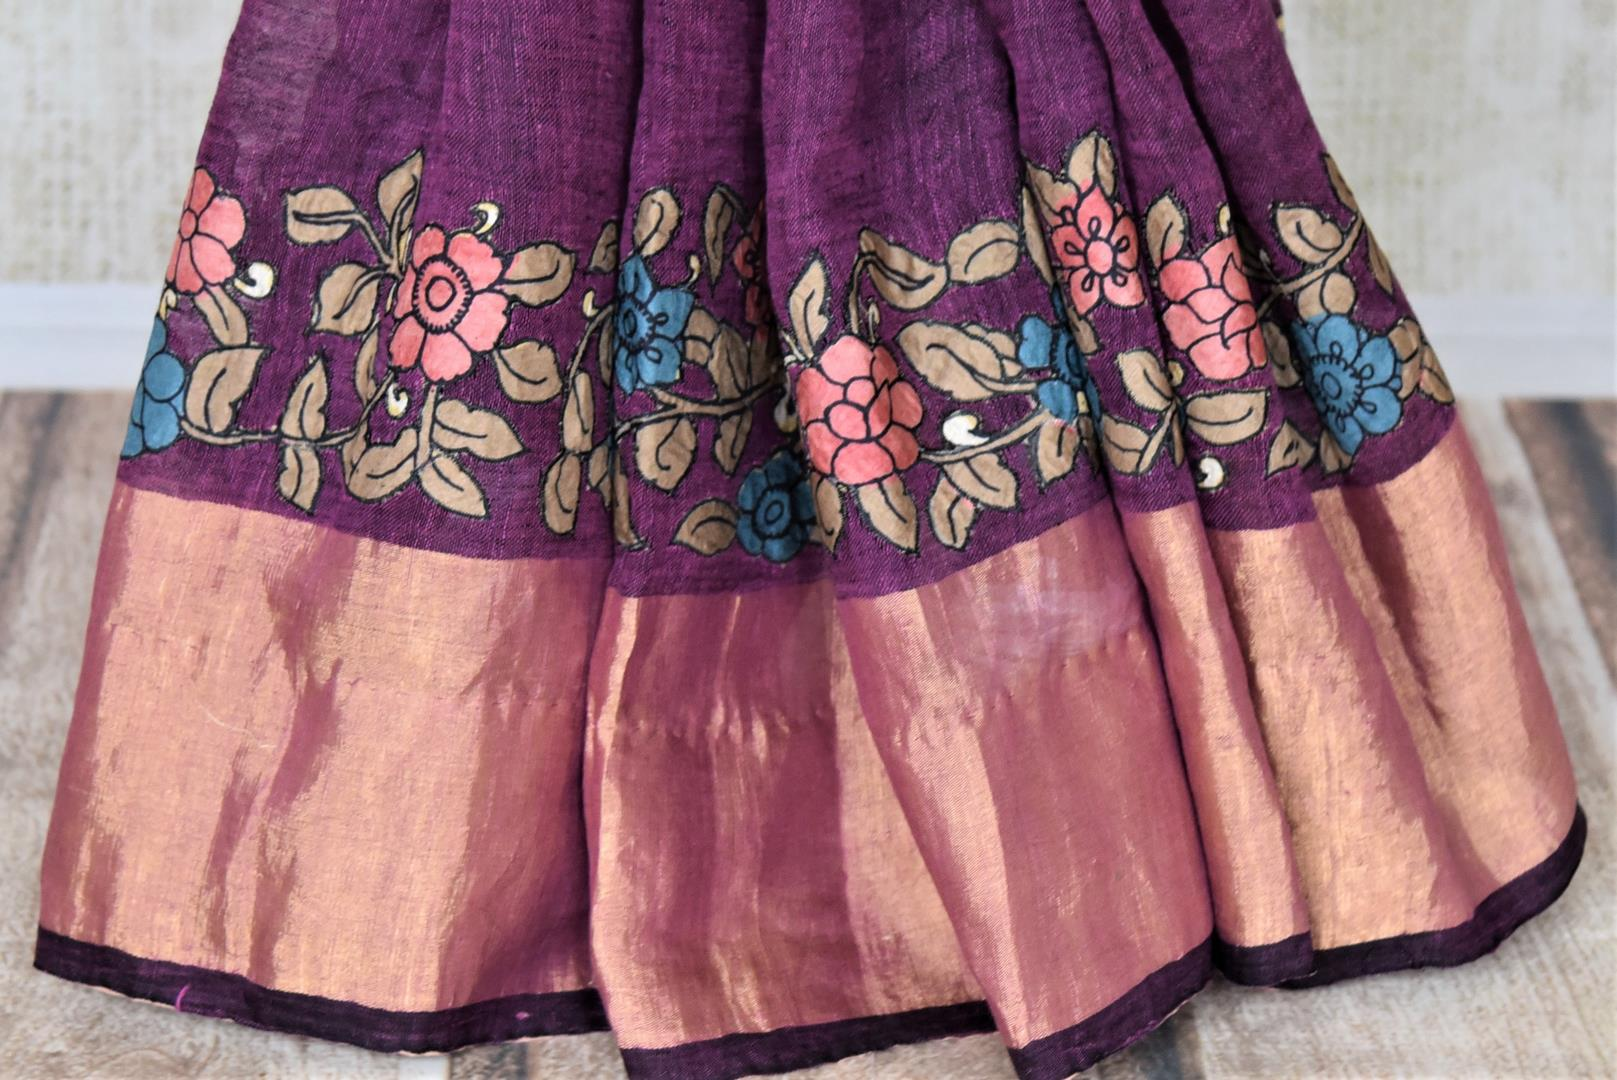 Buy beautiful purple linen sari online in USA with hand painted Kalamkari applique. Be the talk of the occasions in exquisite linen sarees, embroidered saris from Pure Elegance Indian fashion store in USA. -pleats